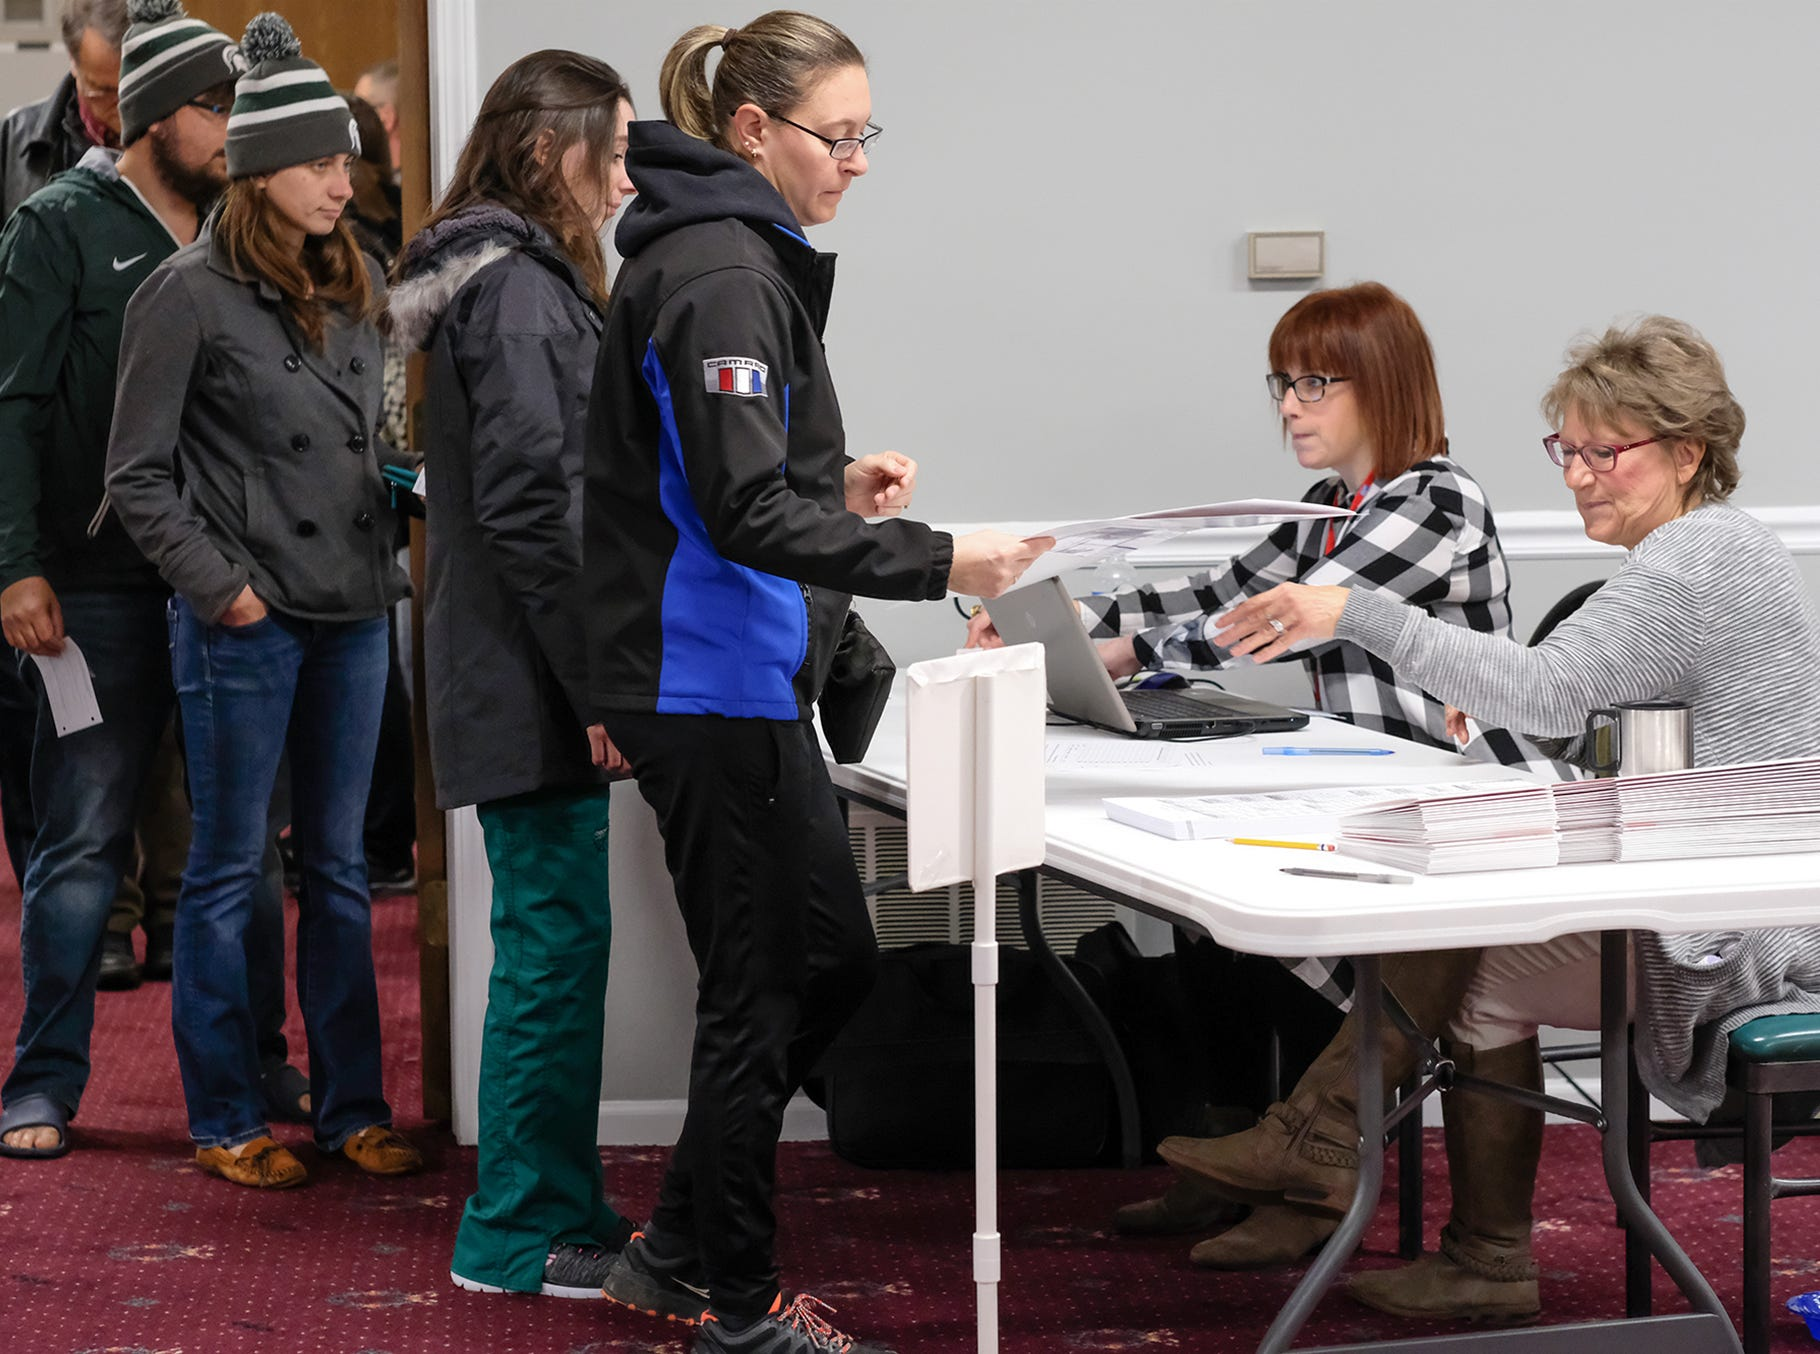 St. Johns voters get their ballots at Bingham Township Hall Tuesday, Nov. 6, 2018.